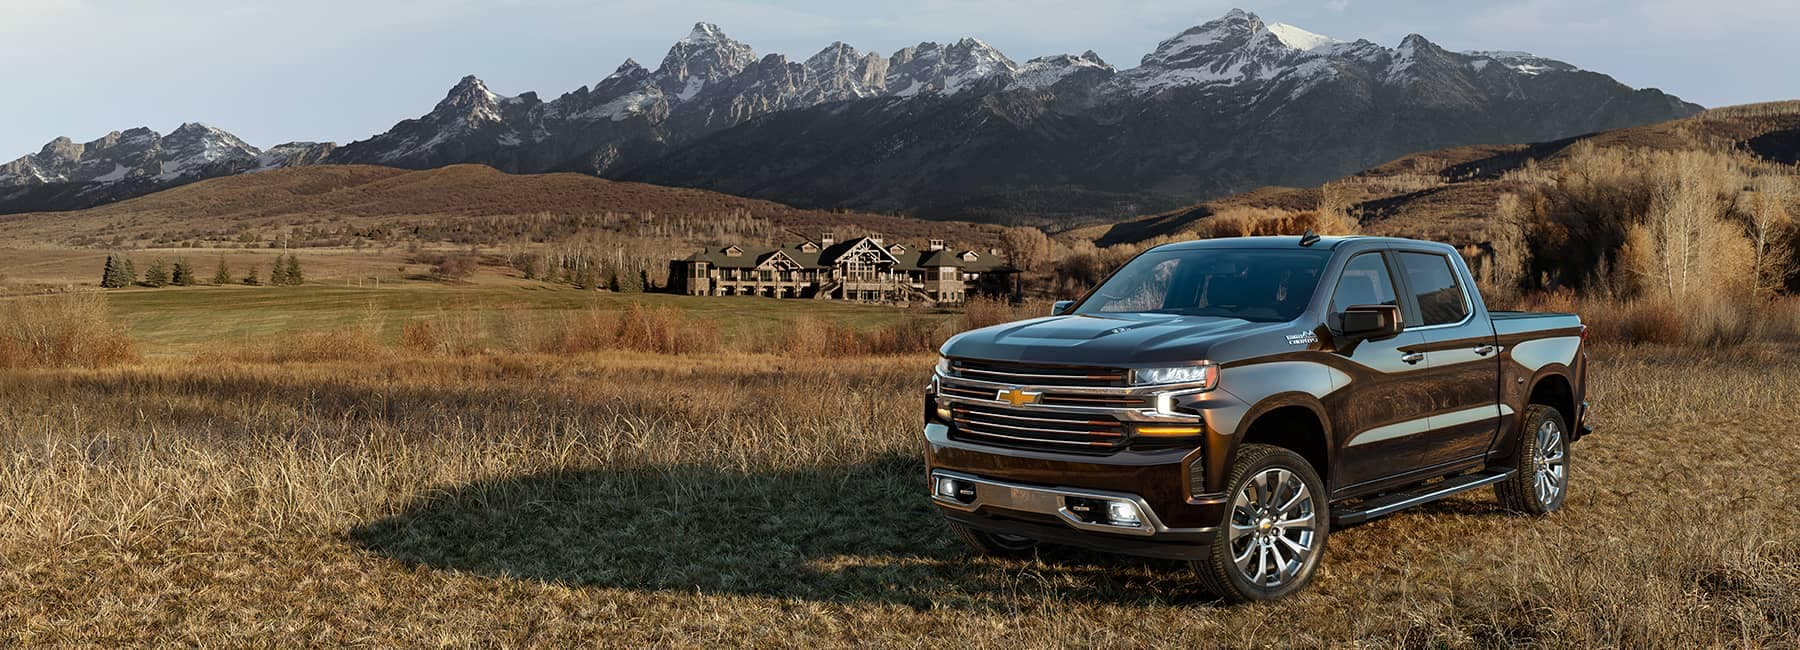 Dark 2021 Chevrolet Silverado 1500LD Crew Cab parked in a Mountain Valley